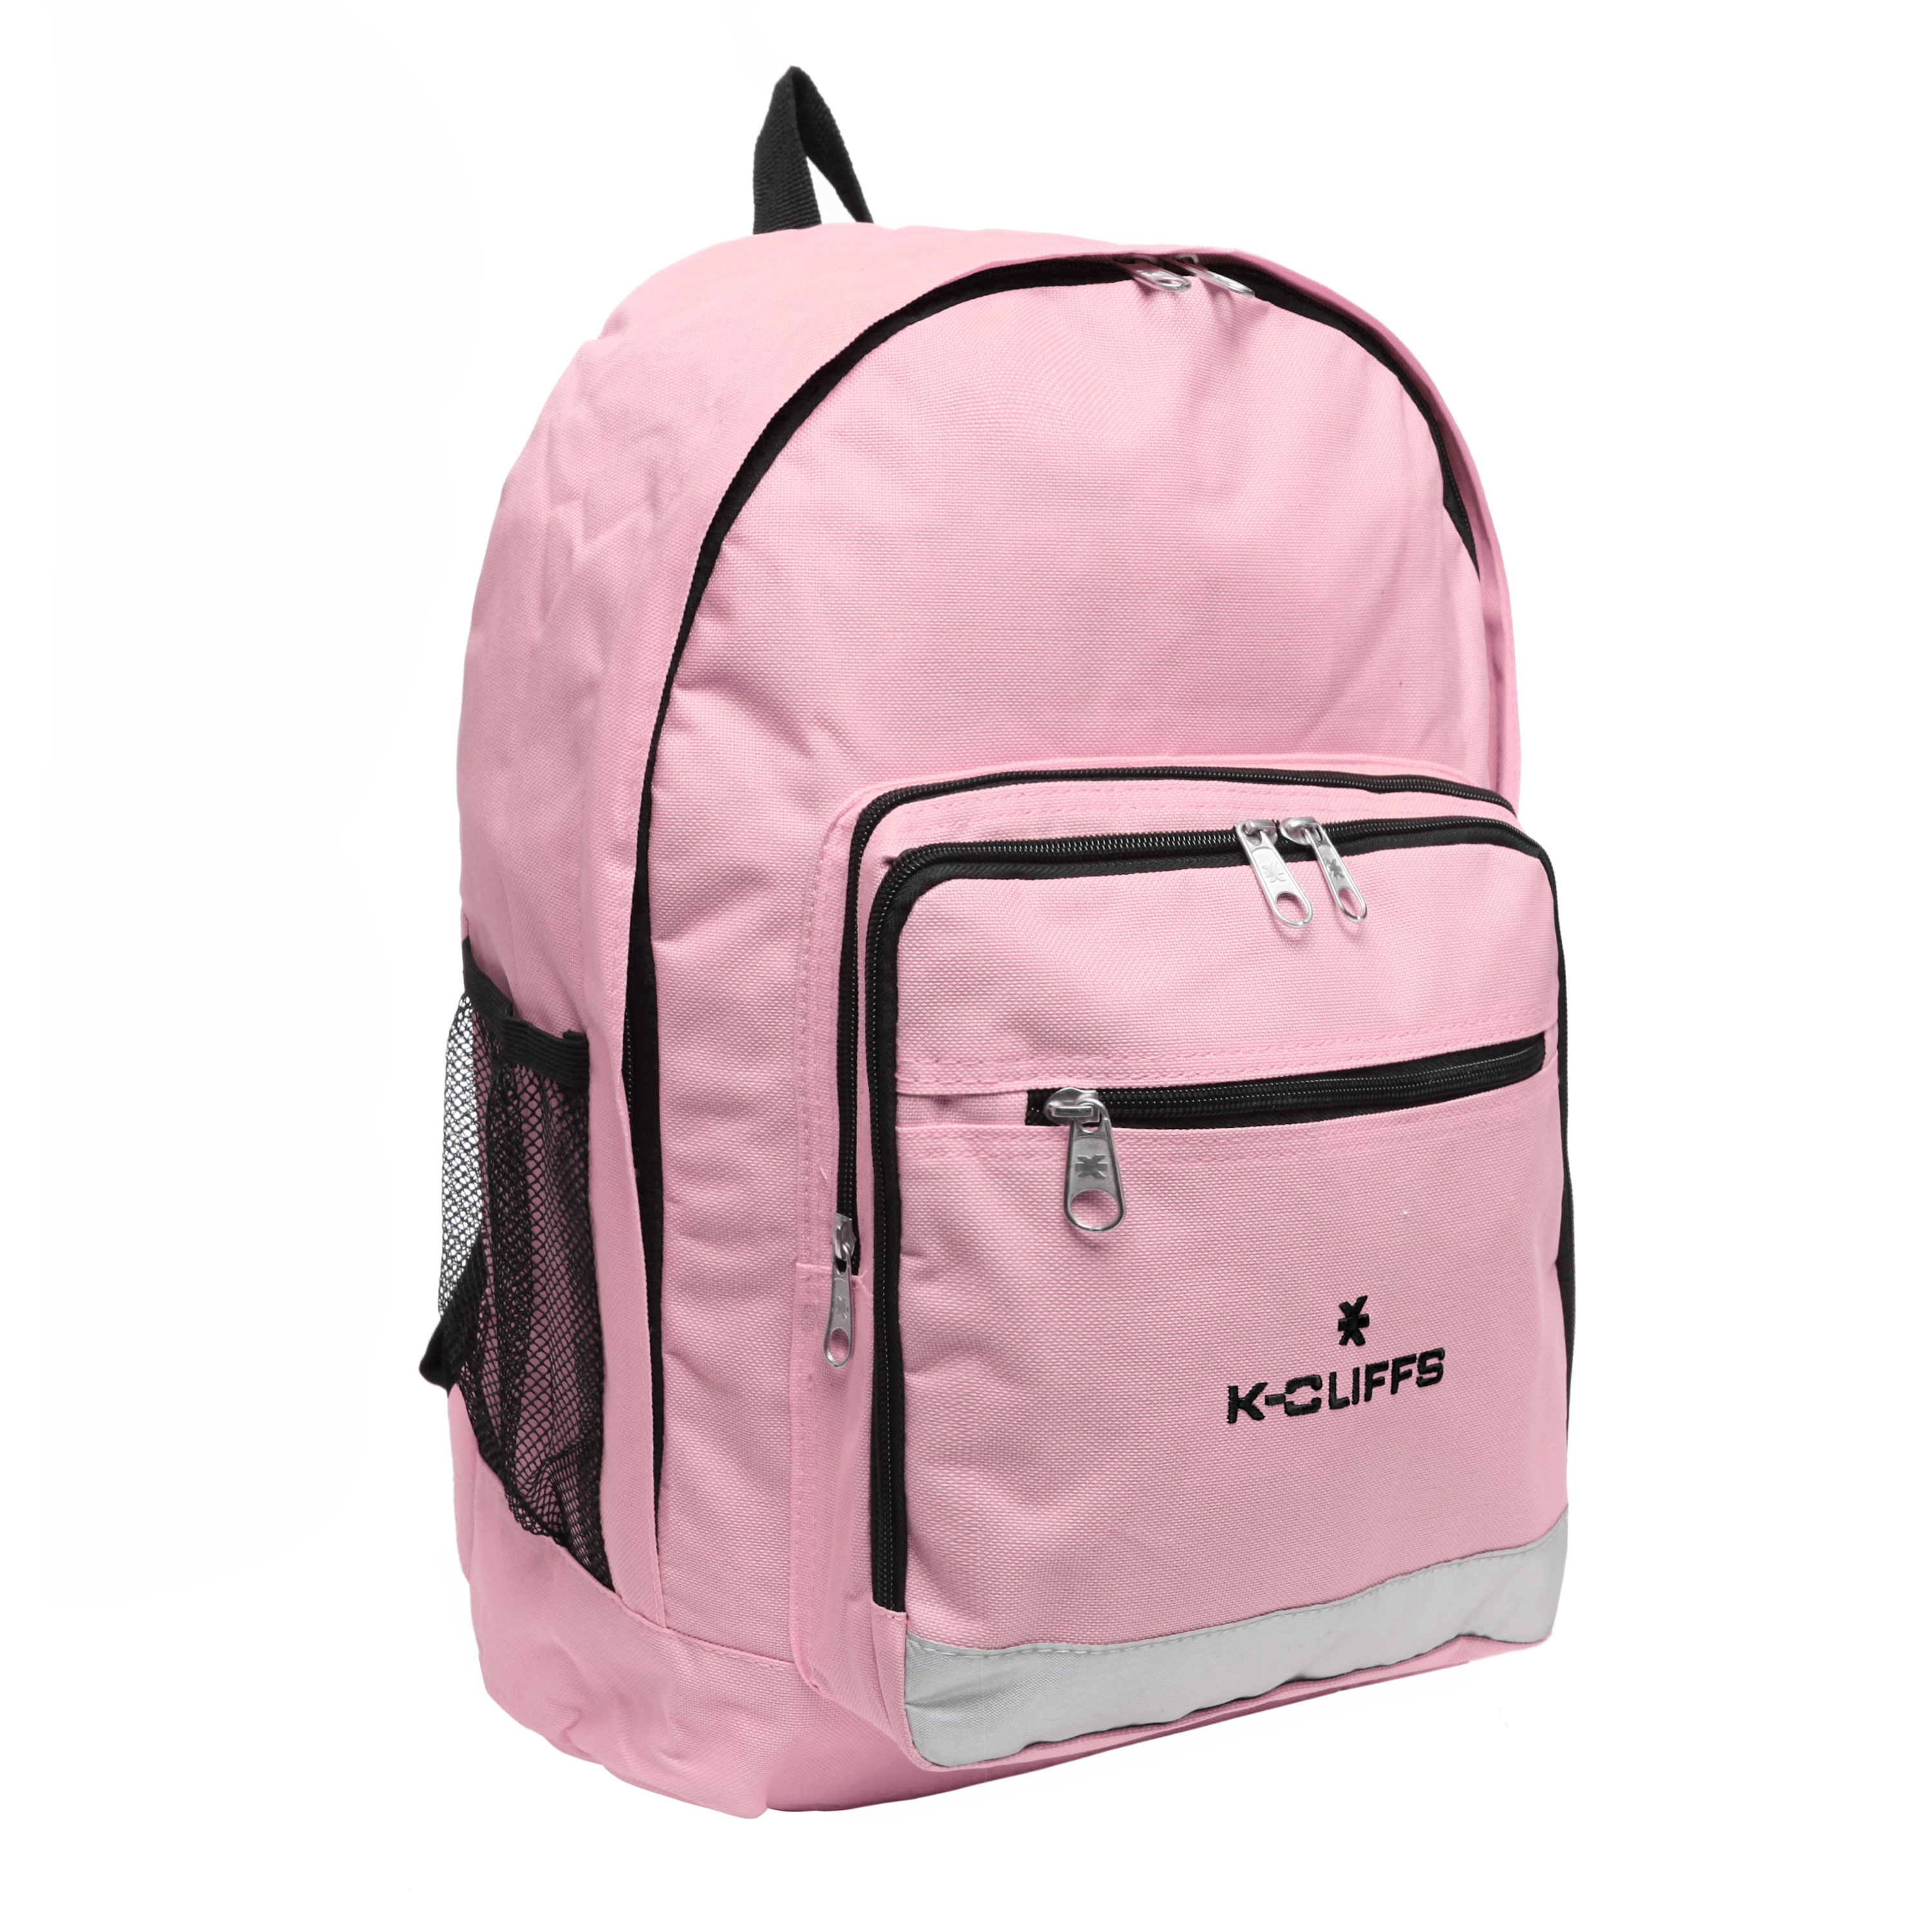 Wholesale Backpacks Pink Multi Compartment Full Size Backpack with Reflective Strip